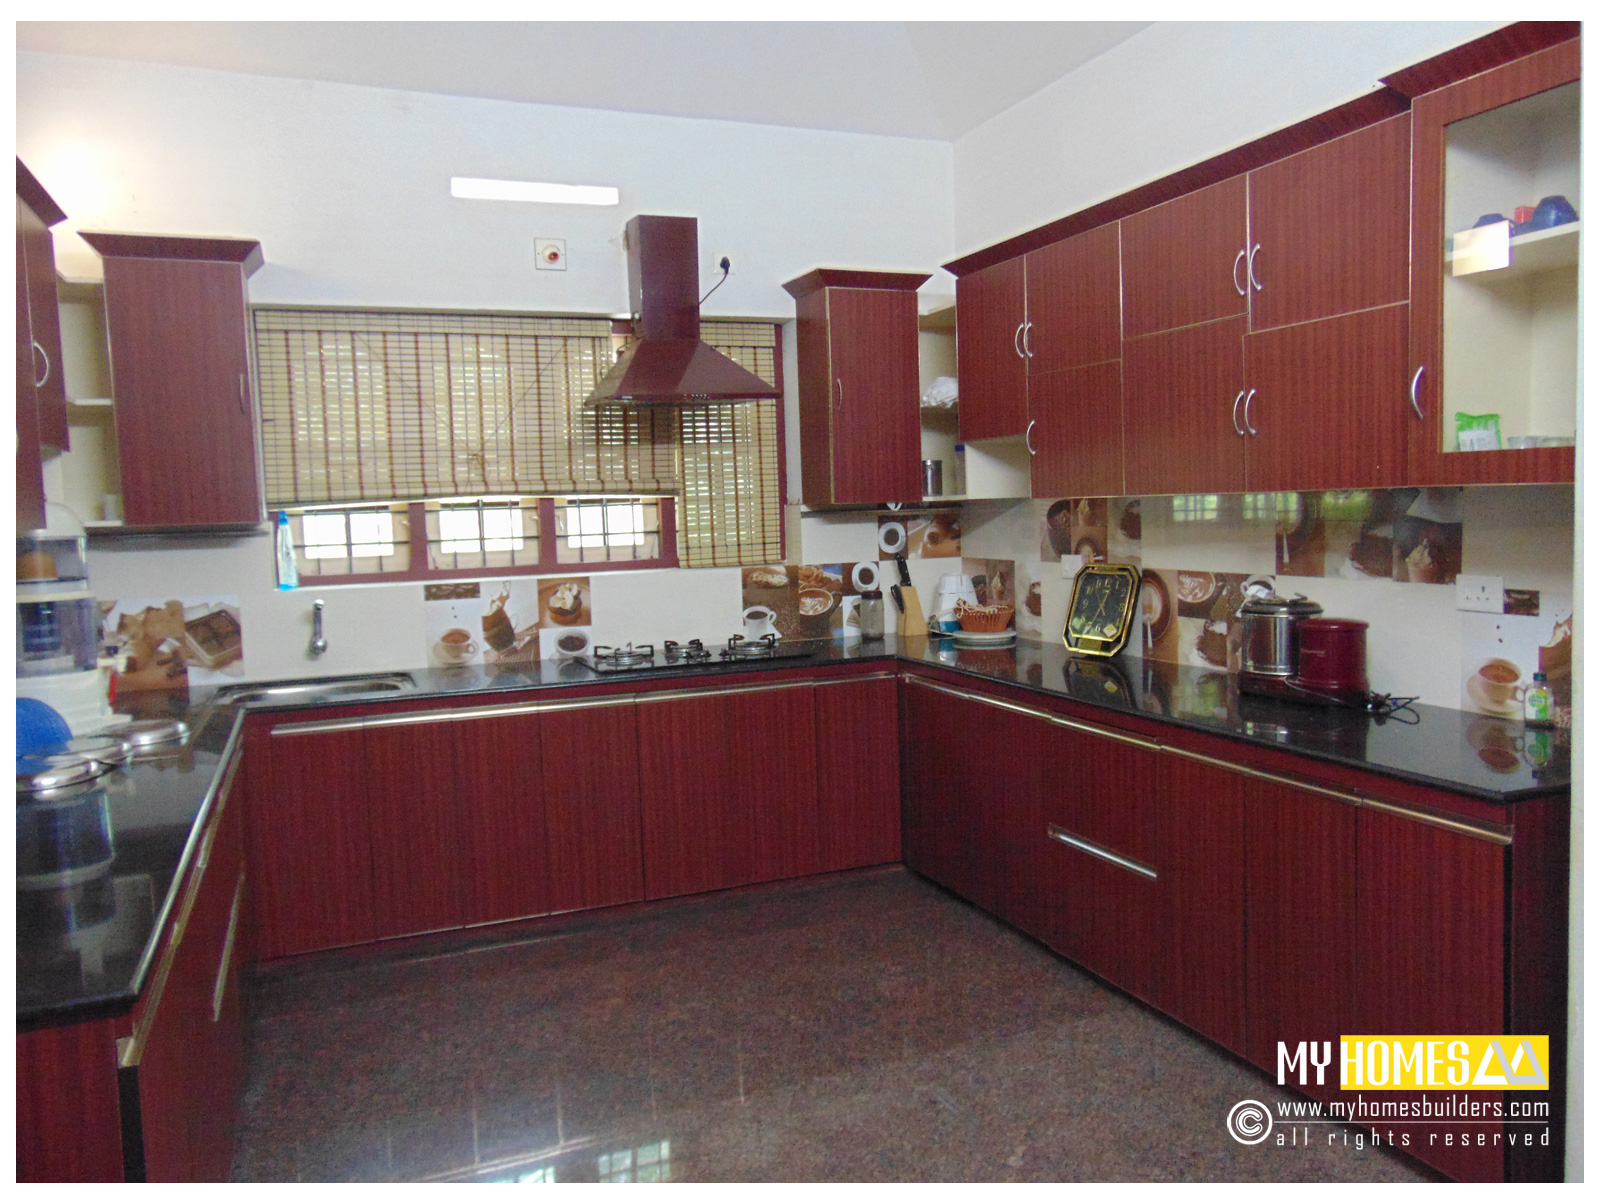 New kitchen designs in kerala home photos by design for New kitchen designs images